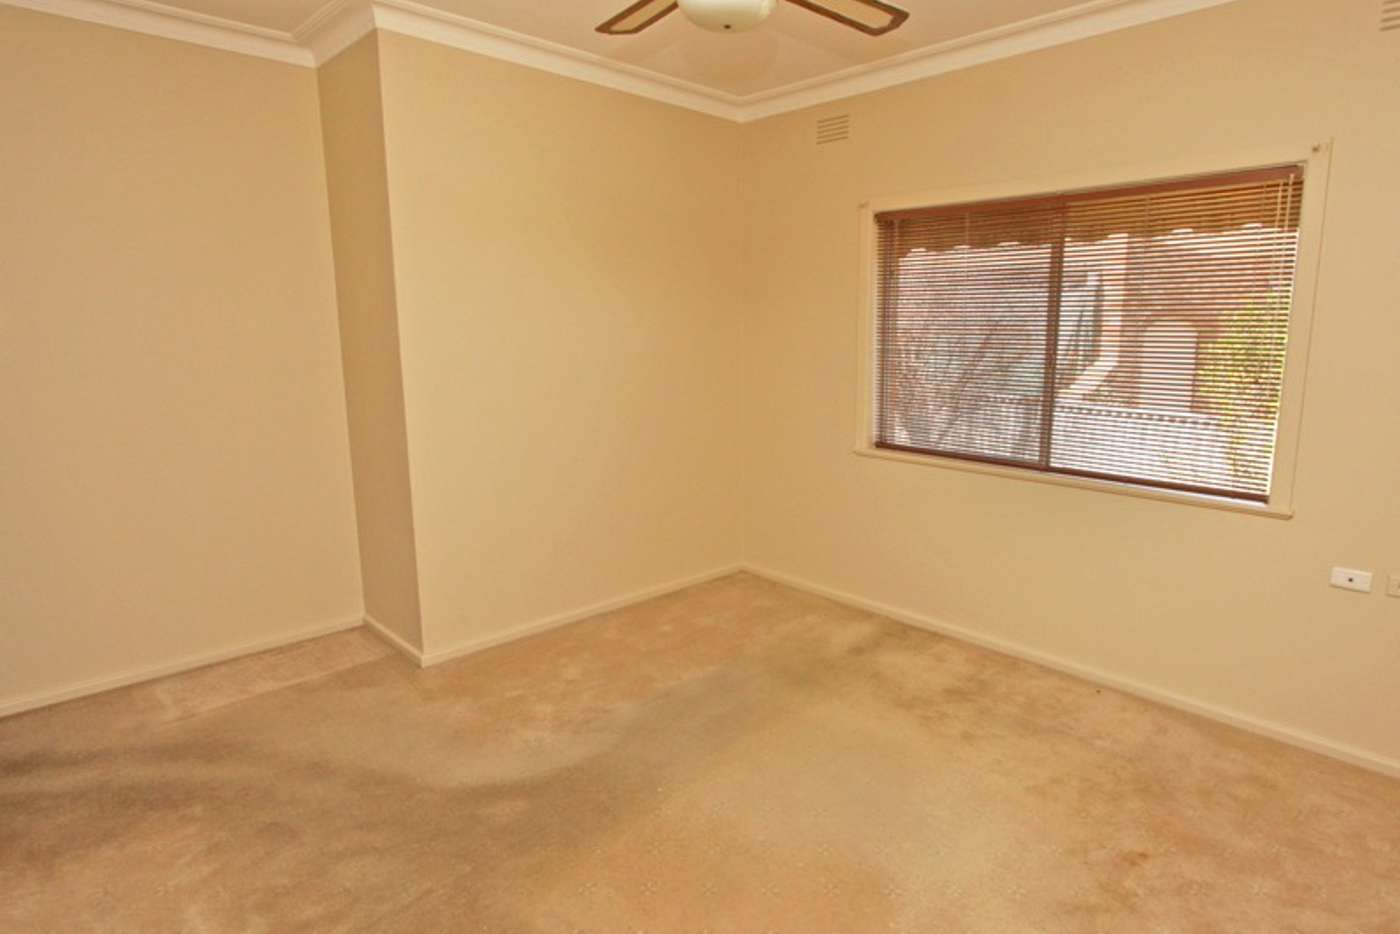 Sixth view of Homely house listing, 39 Raye Street, Tolland NSW 2650